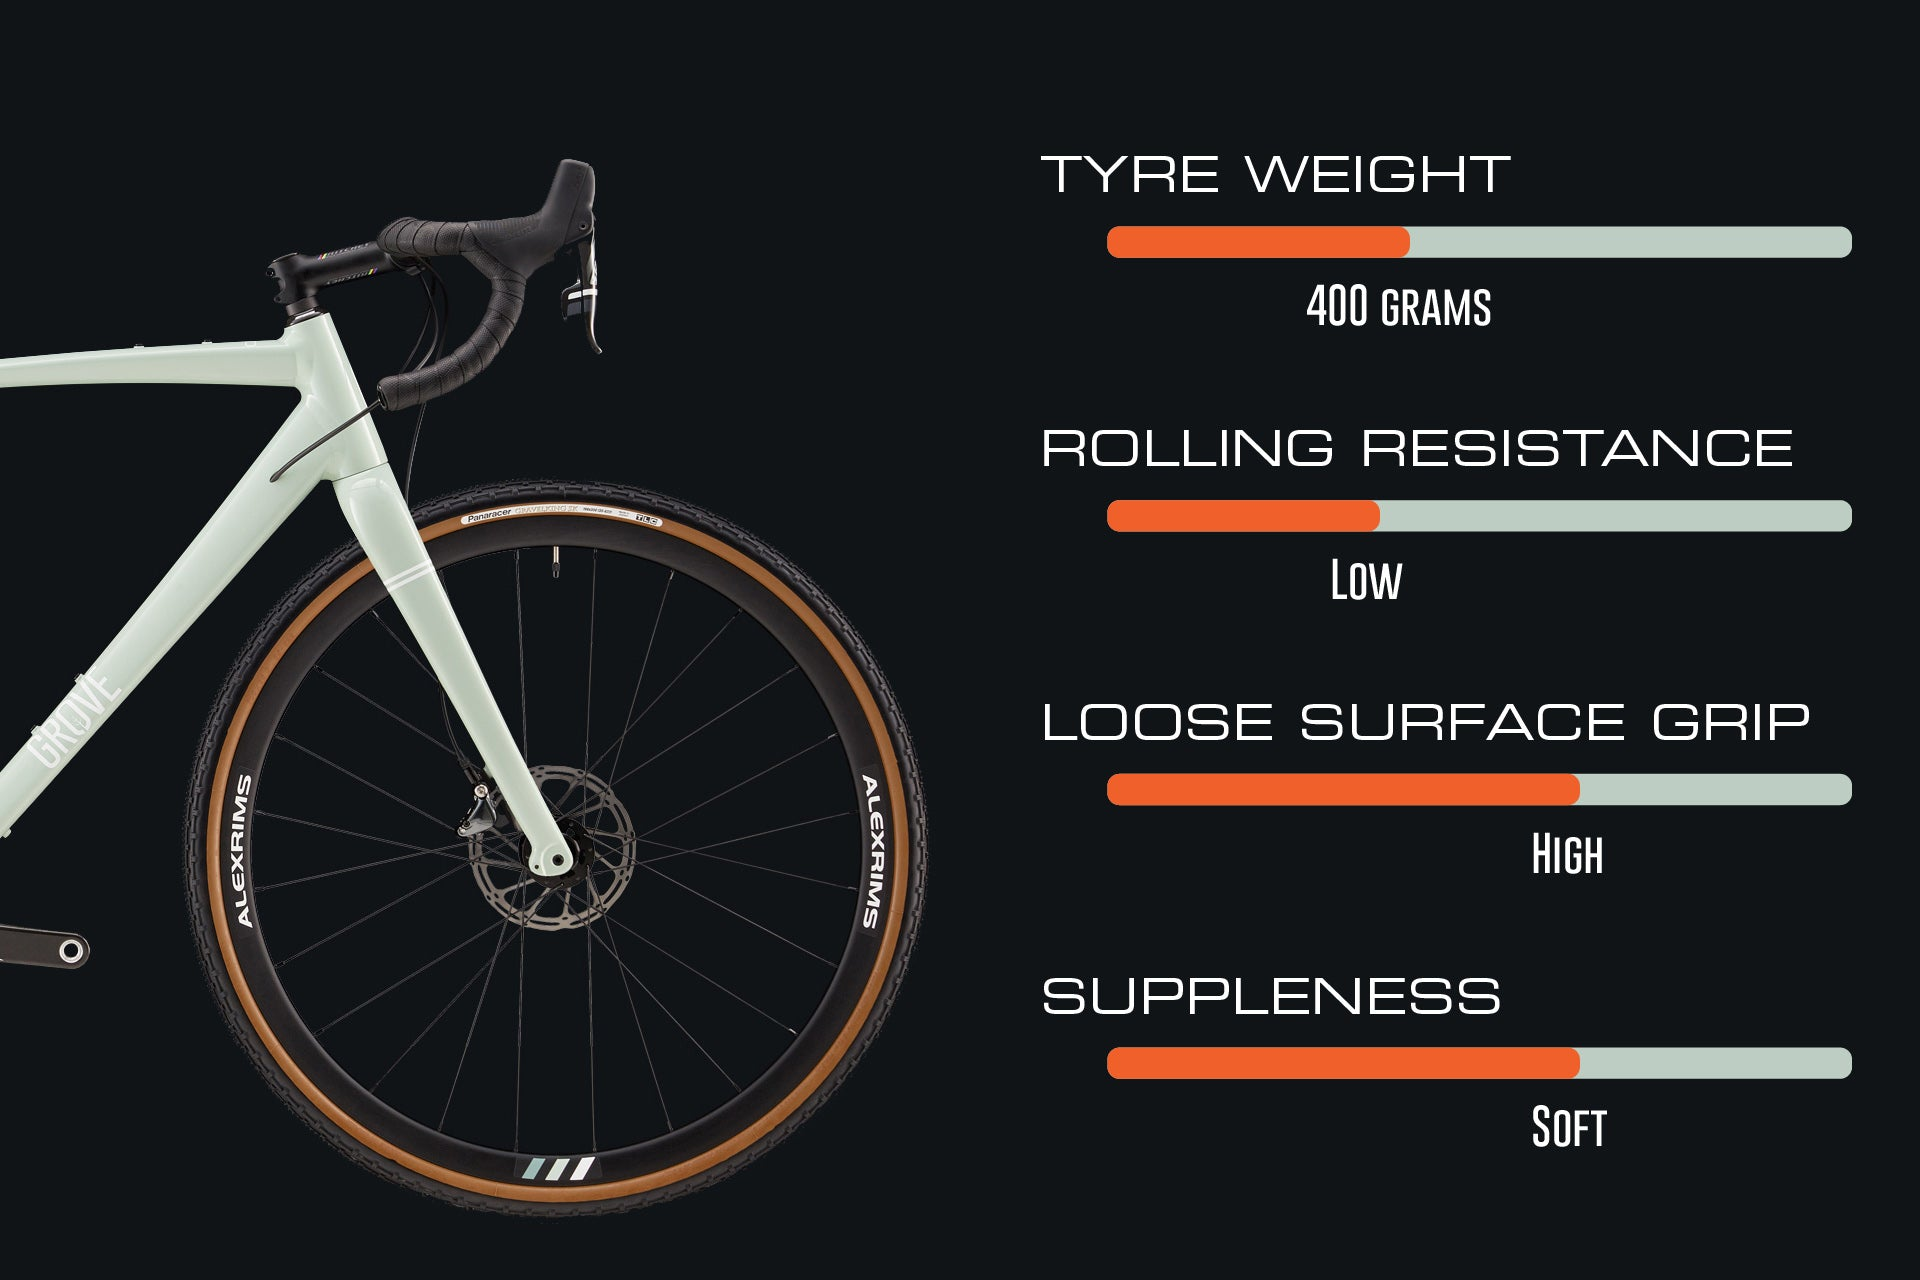 Panaracer GravelKing features performance 700x35 SK